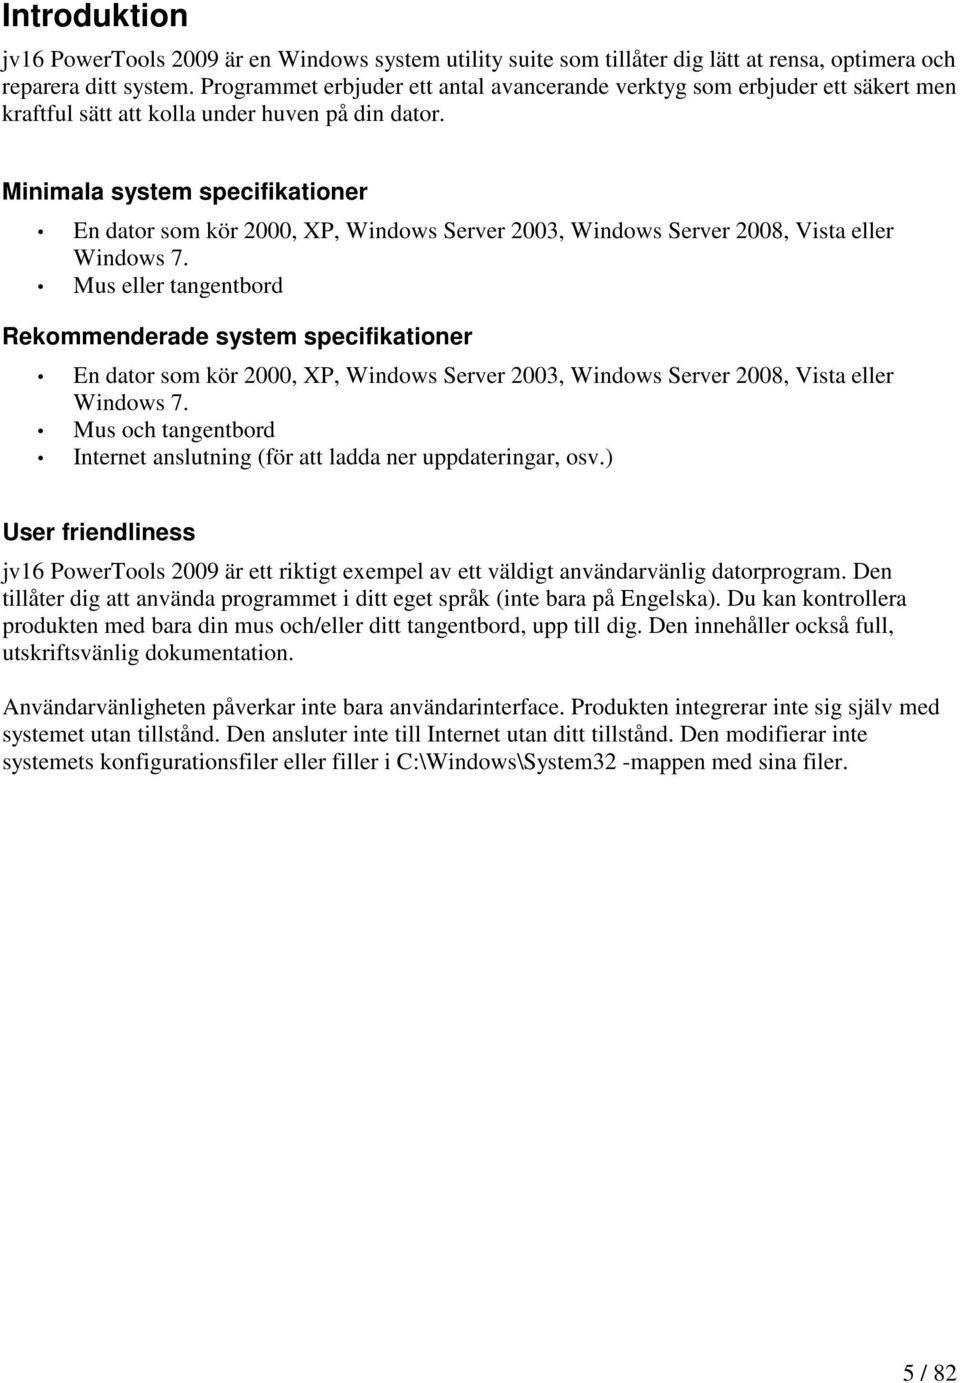 Minimala system specifikationer En dator som kör 2000, XP, Windows Server 2003, Windows Server 2008, Vista eller Windows 7.